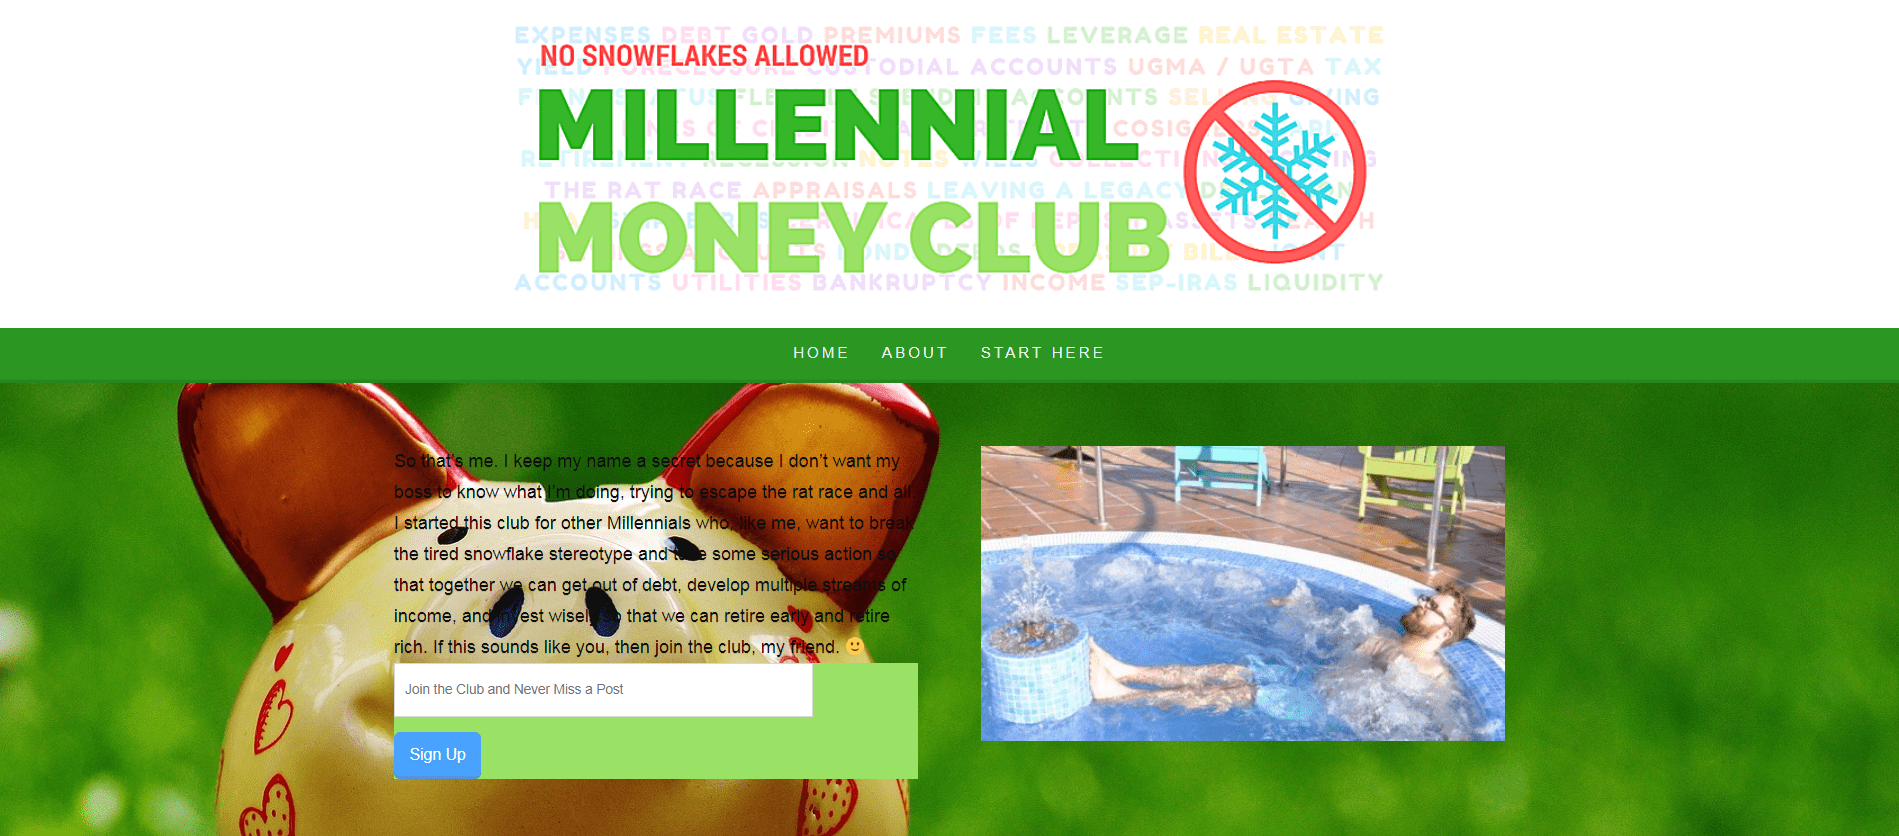 Millennial Money Club